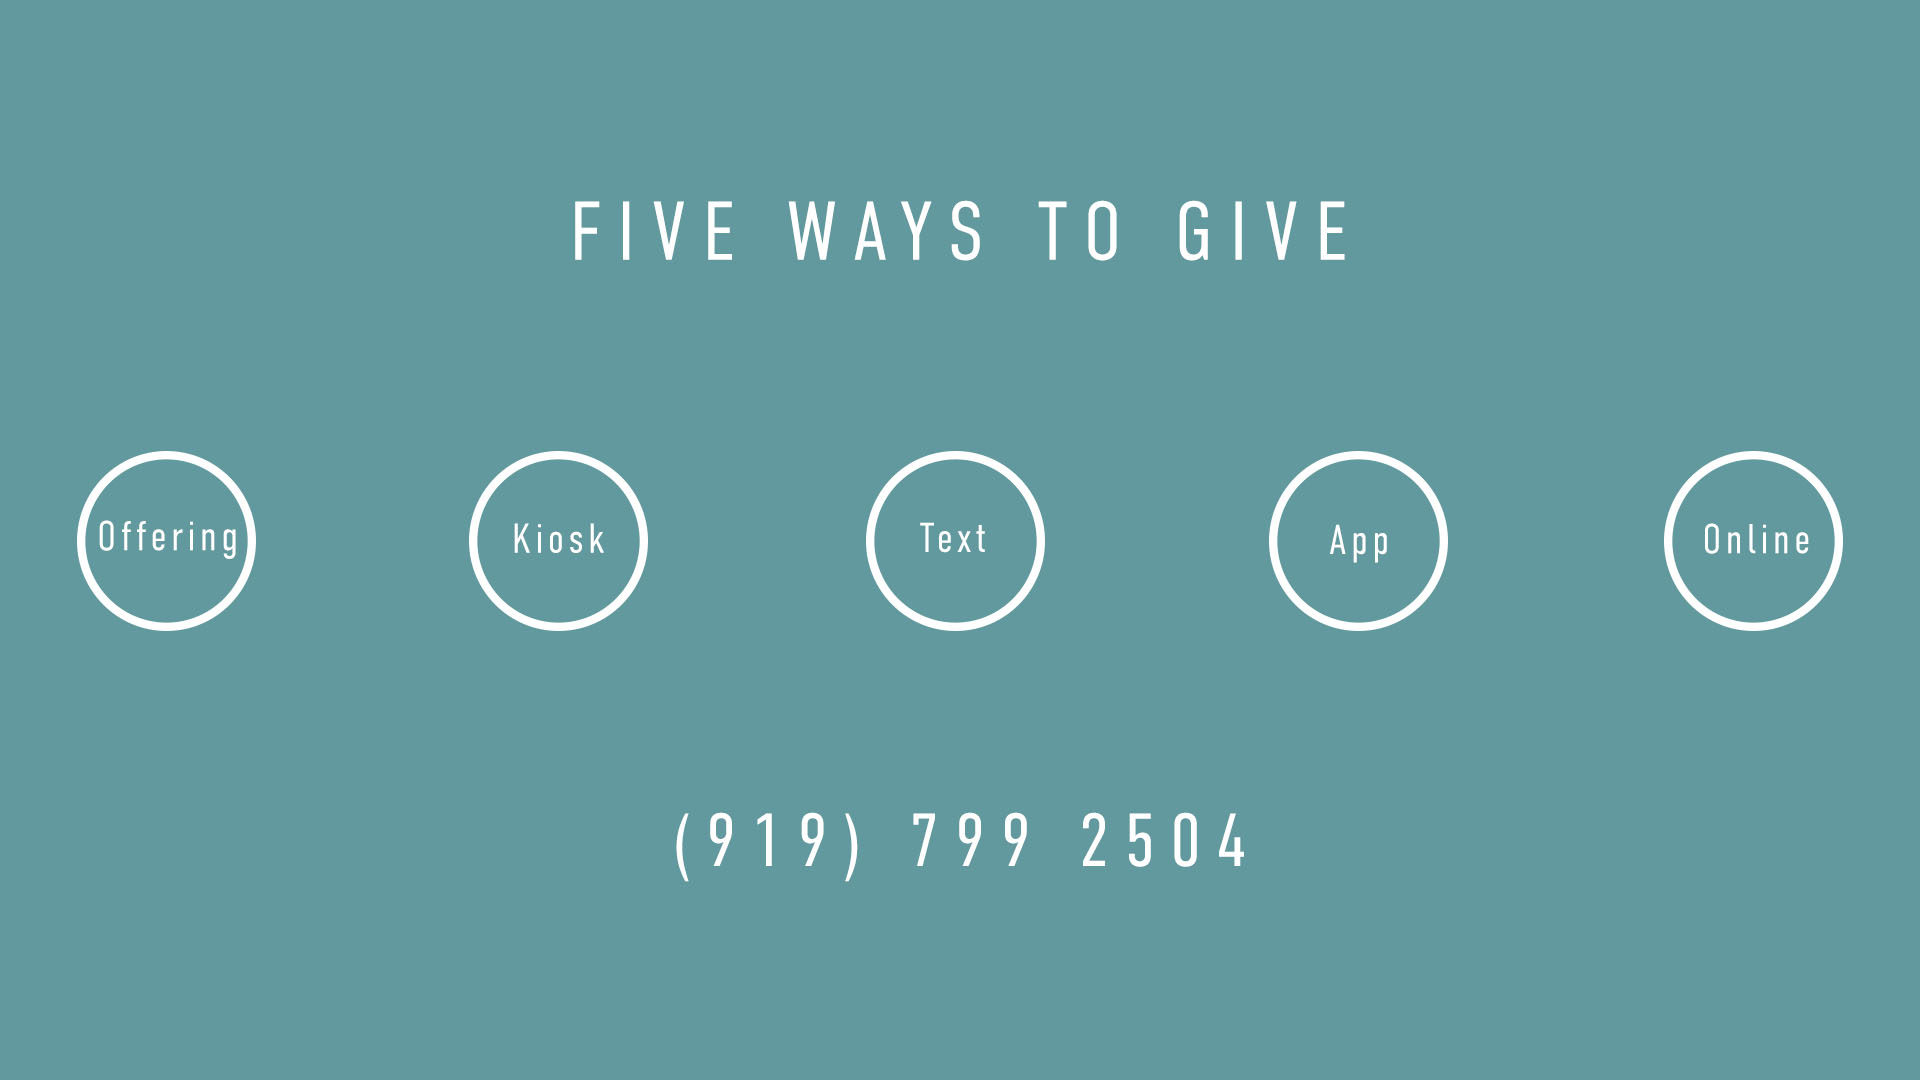 5 ways to give(south).jpg